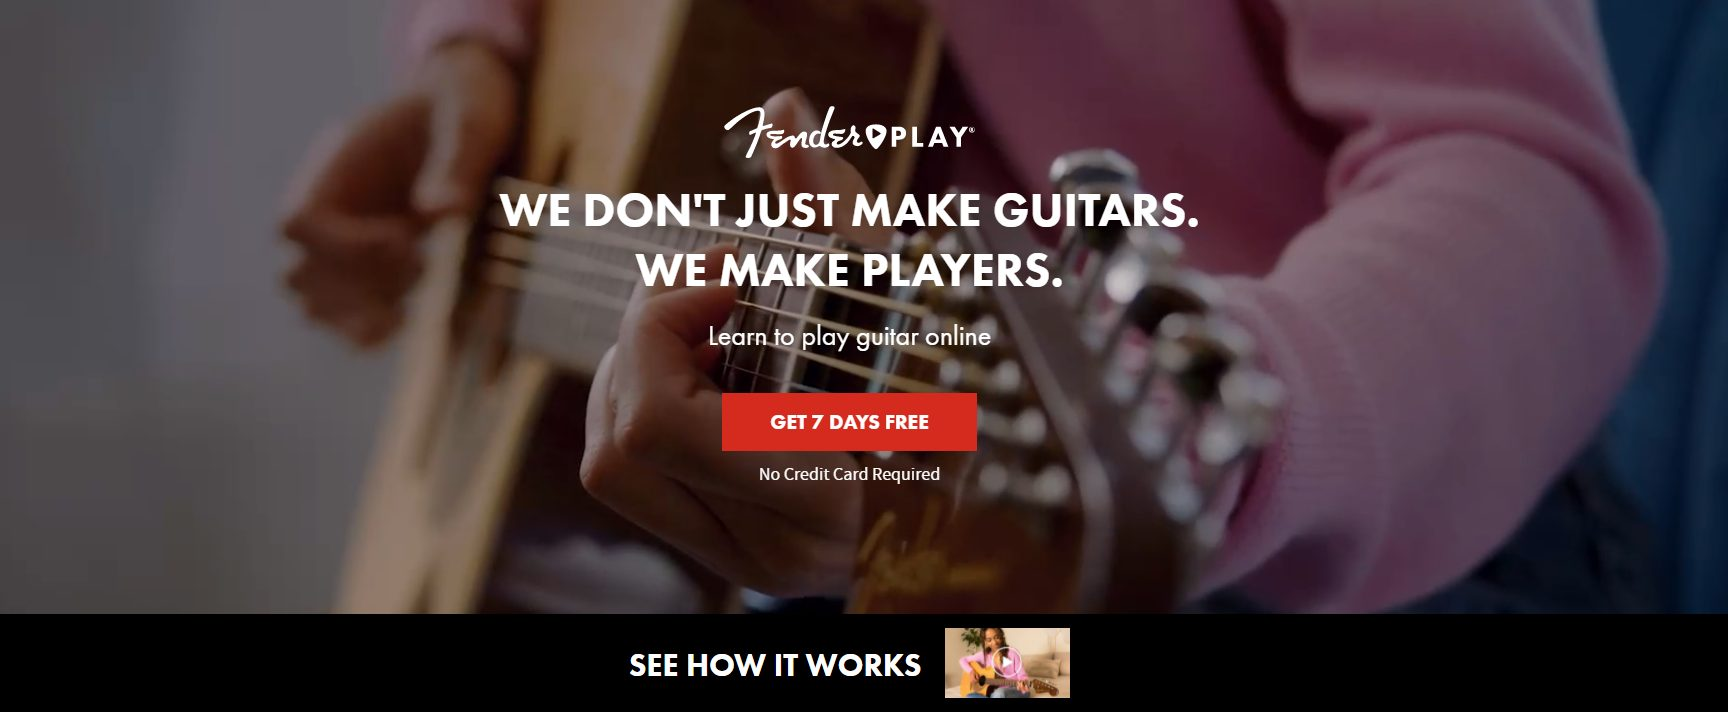 Fender Play Home Page - June 2021